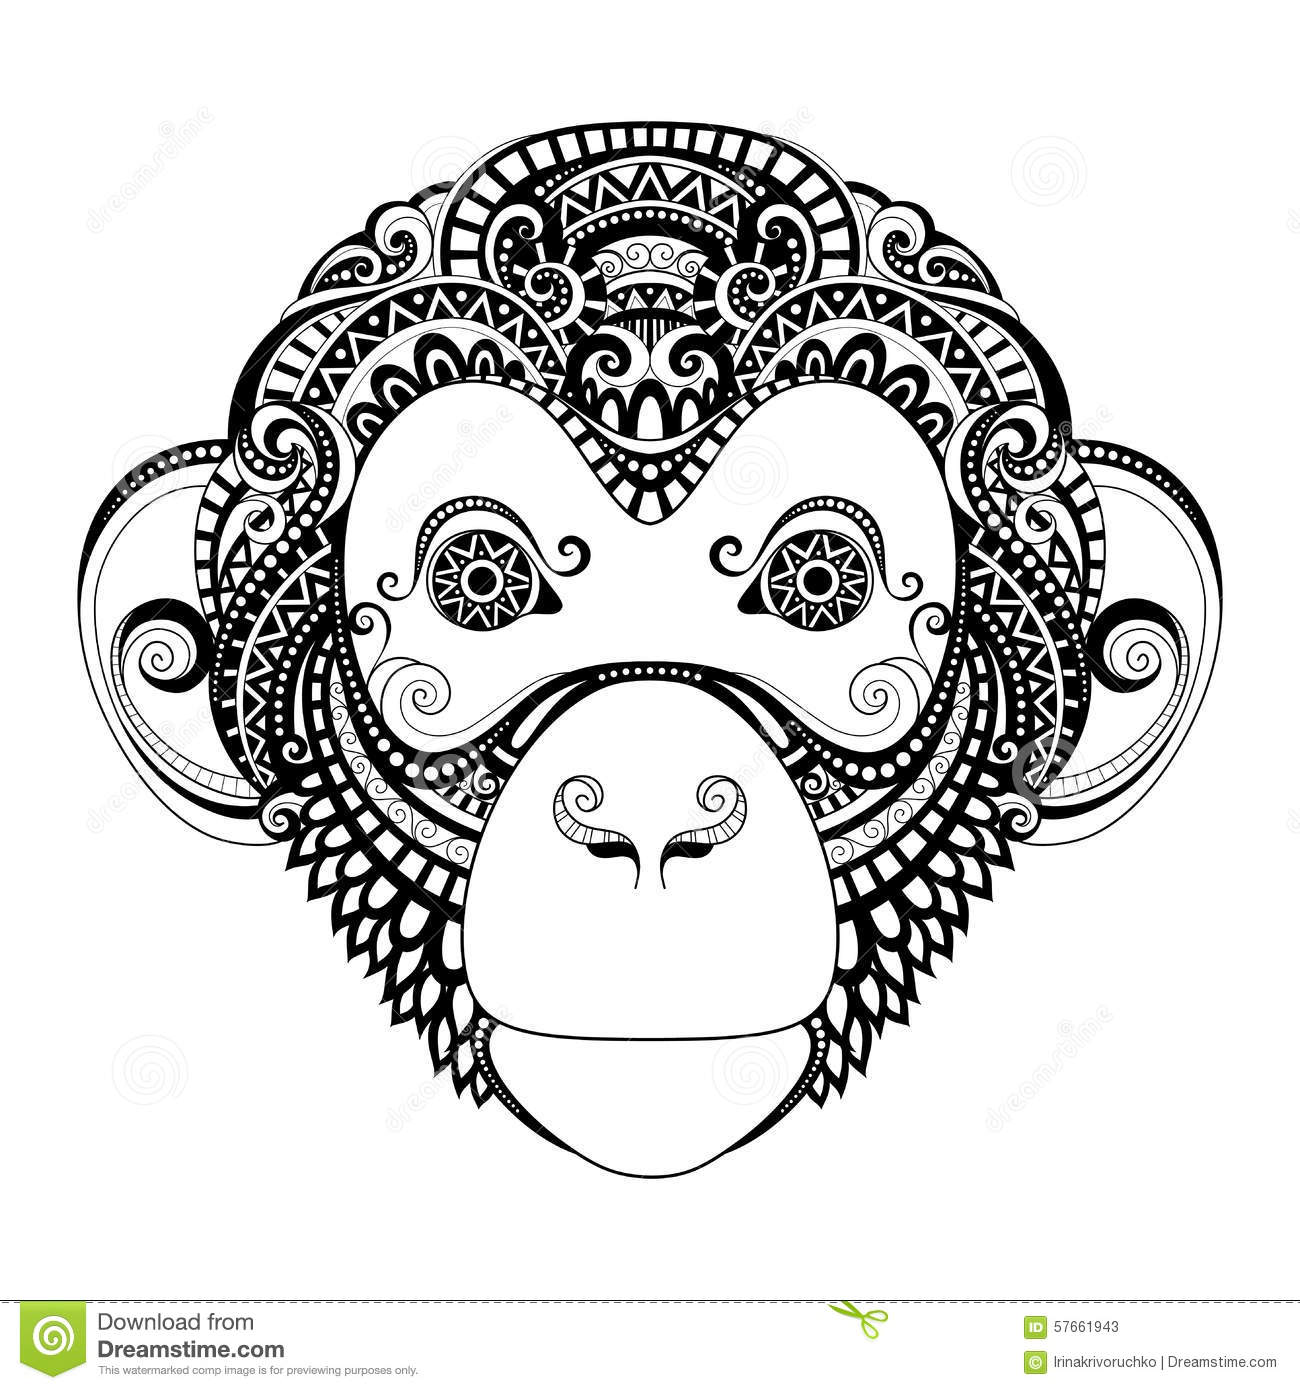 143 Batman S Pow besides Simple Elegant Lace Pattern Art Deco Style Image32302524 besides Noel Rive Droite Chez Sarah Lavoine 101213 633380 likewise Stock Illustration Vector Ornate Monkey Head Patterned Tribal Monochrome Design Symbol Year Chinese Horoscope Image57661943 likewise Textiles. on art deco graphic design